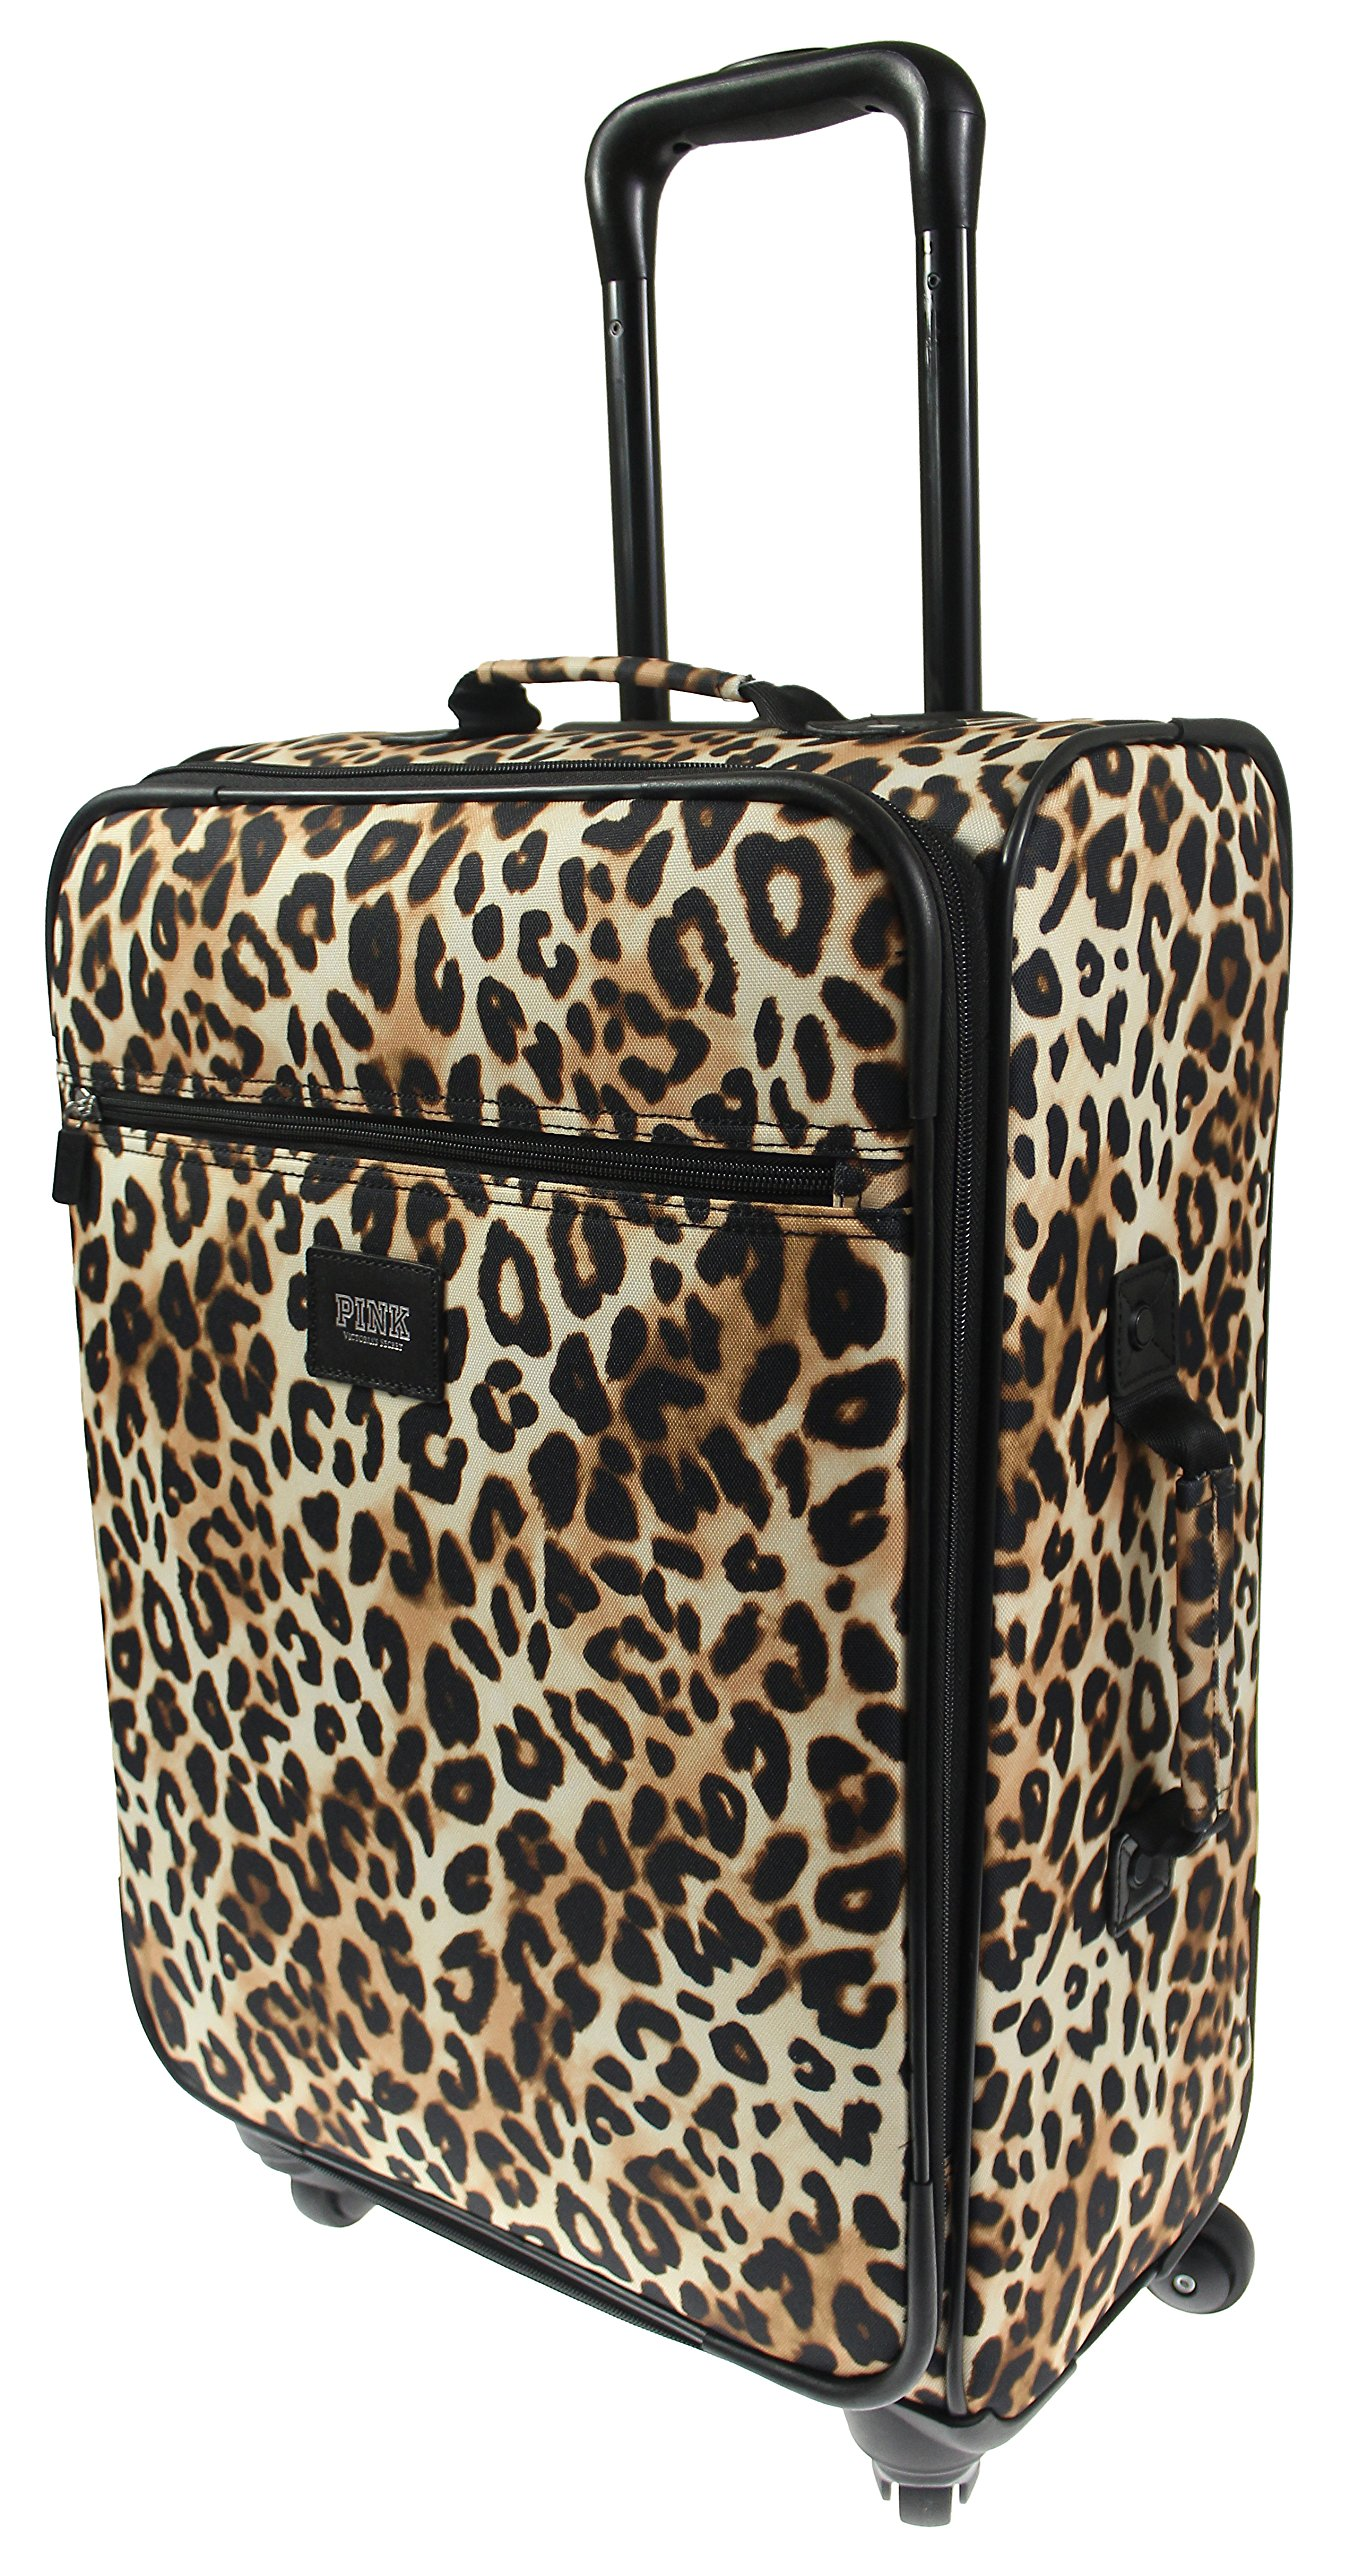 Victoria's Secret PINK Travel Carry-On VACAY READY Wheelie Suitcase - Leopard